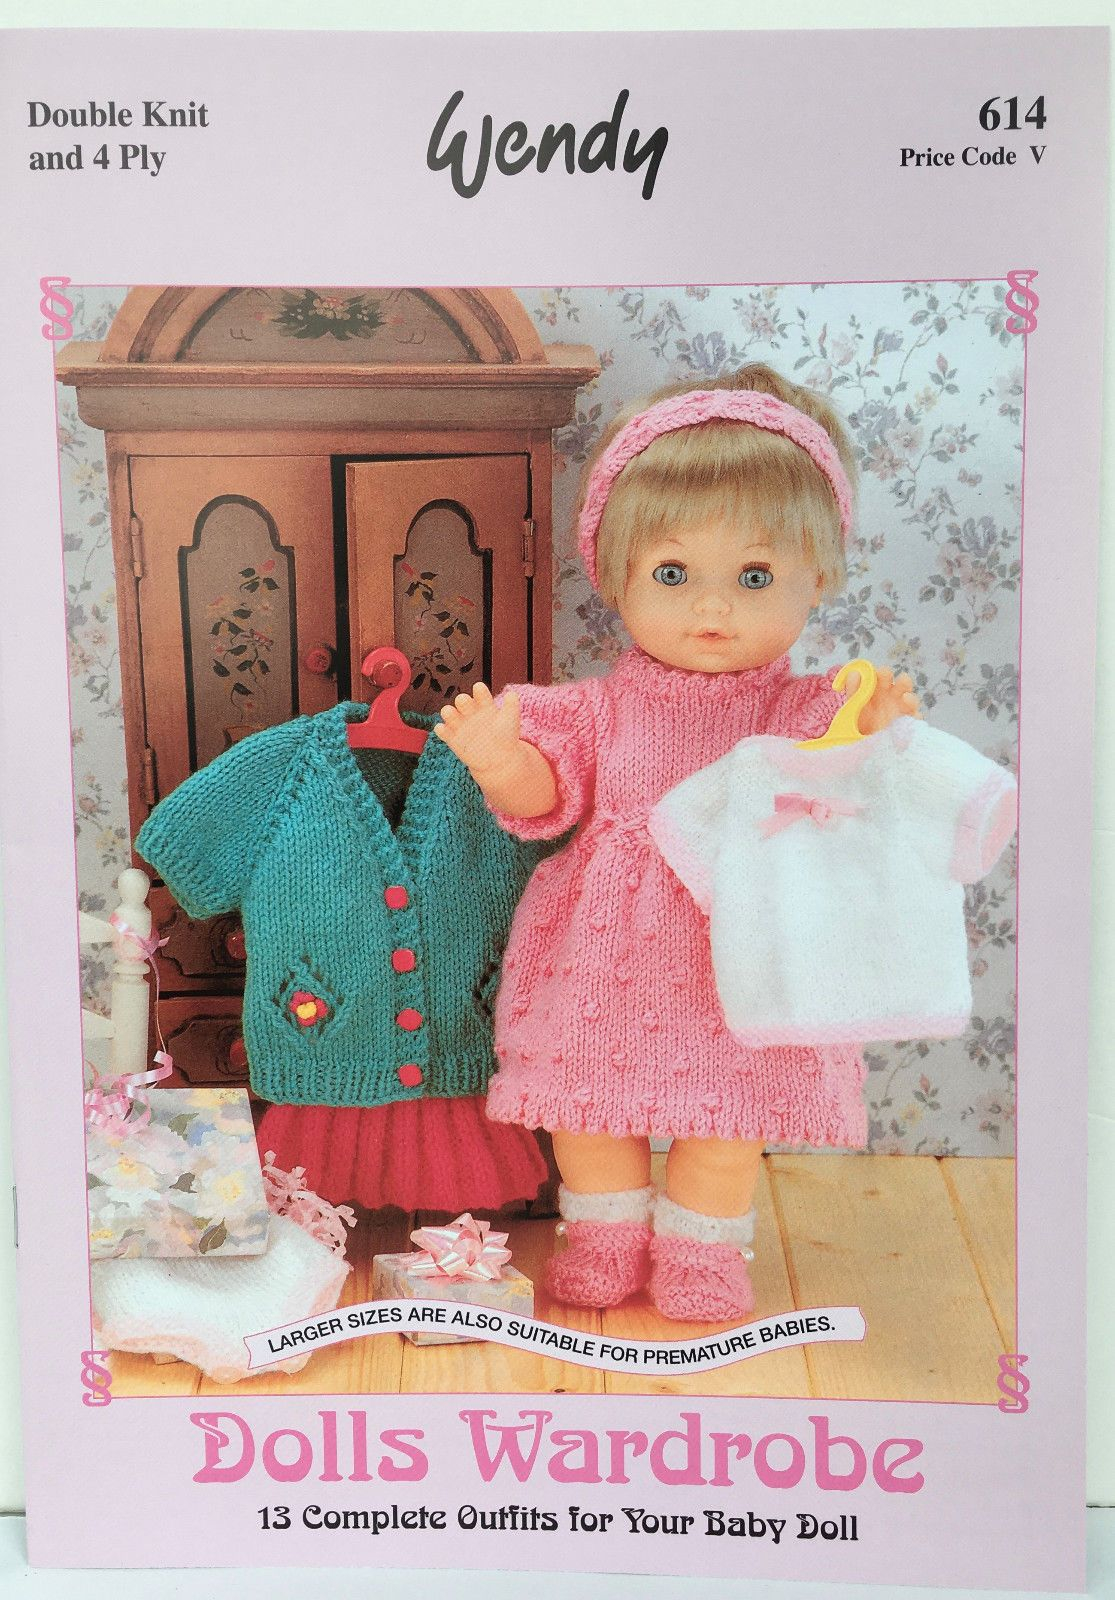 Double Knitting Baby Patterns Wendy Dolls Wardrobe Double Knit 4 Ply Knitting Pattern